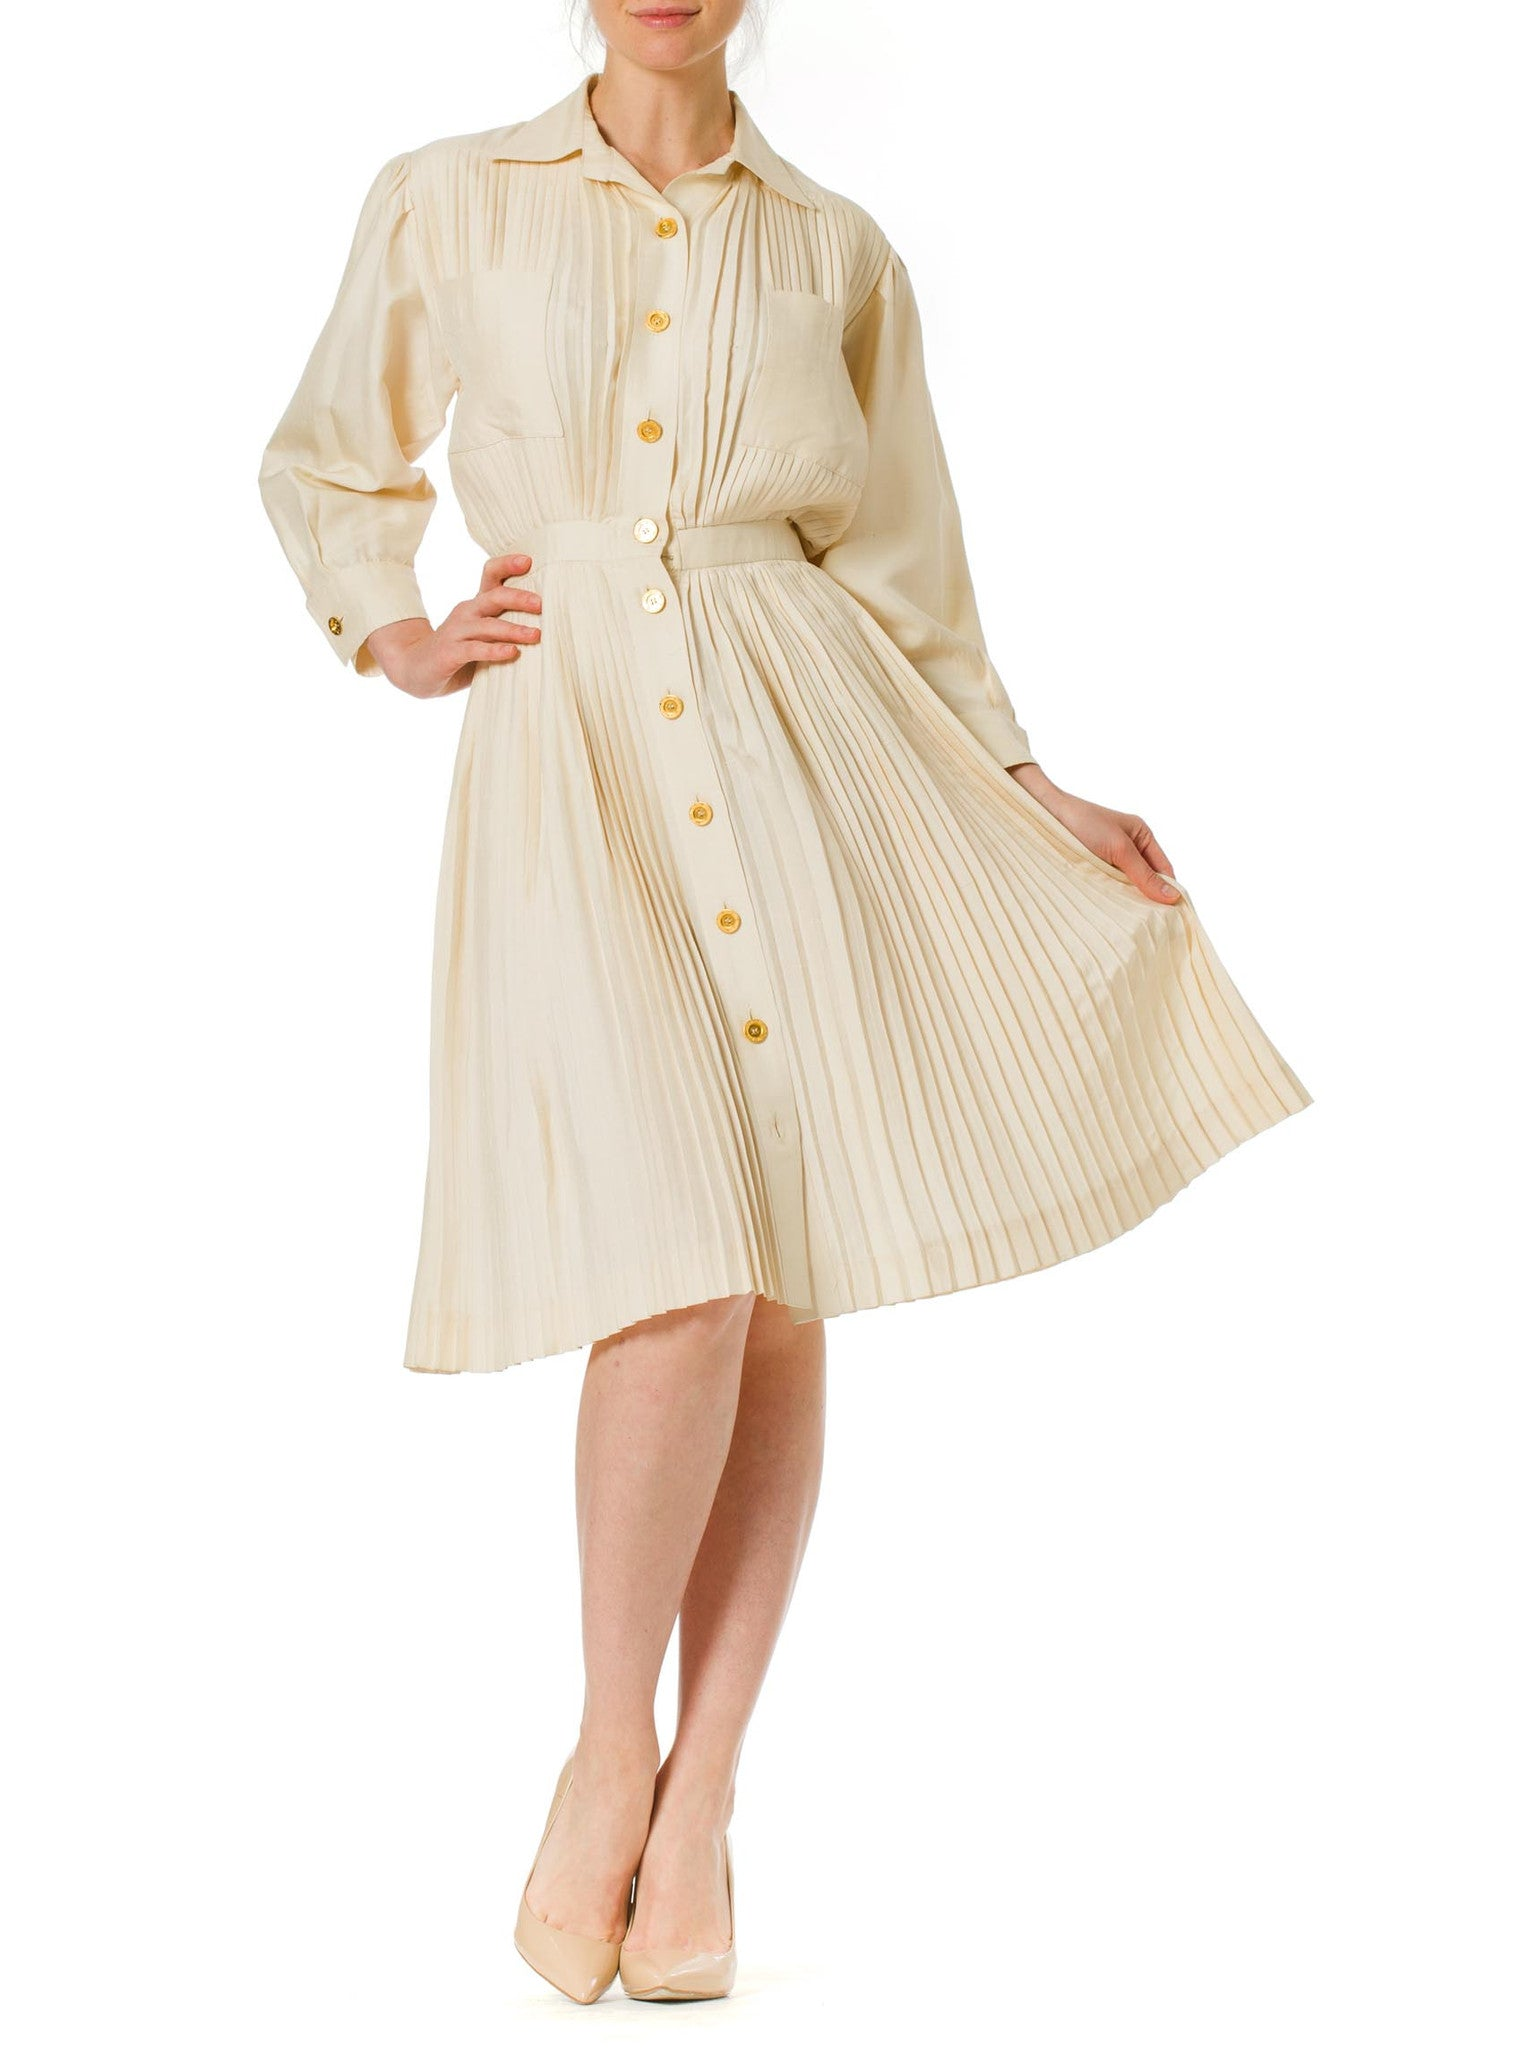 Vintage 1970's Nina Ricci Pleated Ivory Dress